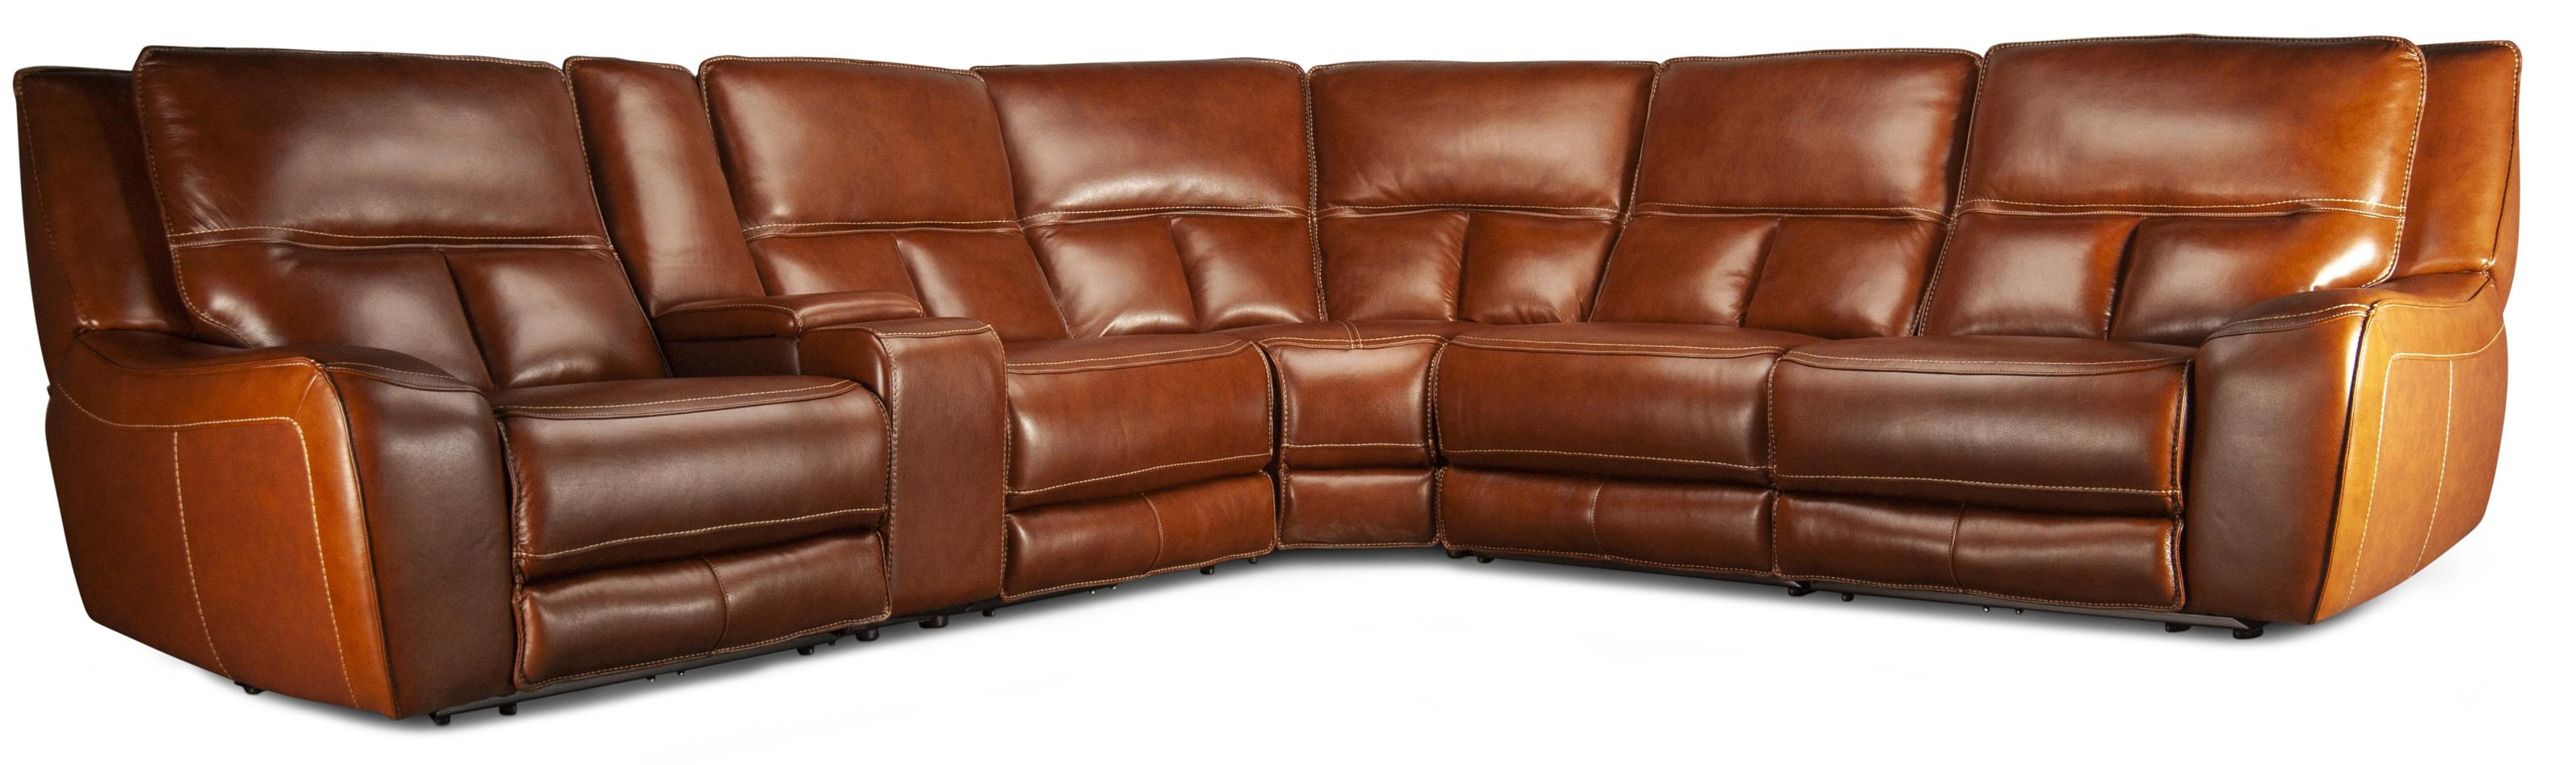 Cora Cora Leather Match Power Sectional at Morris Home